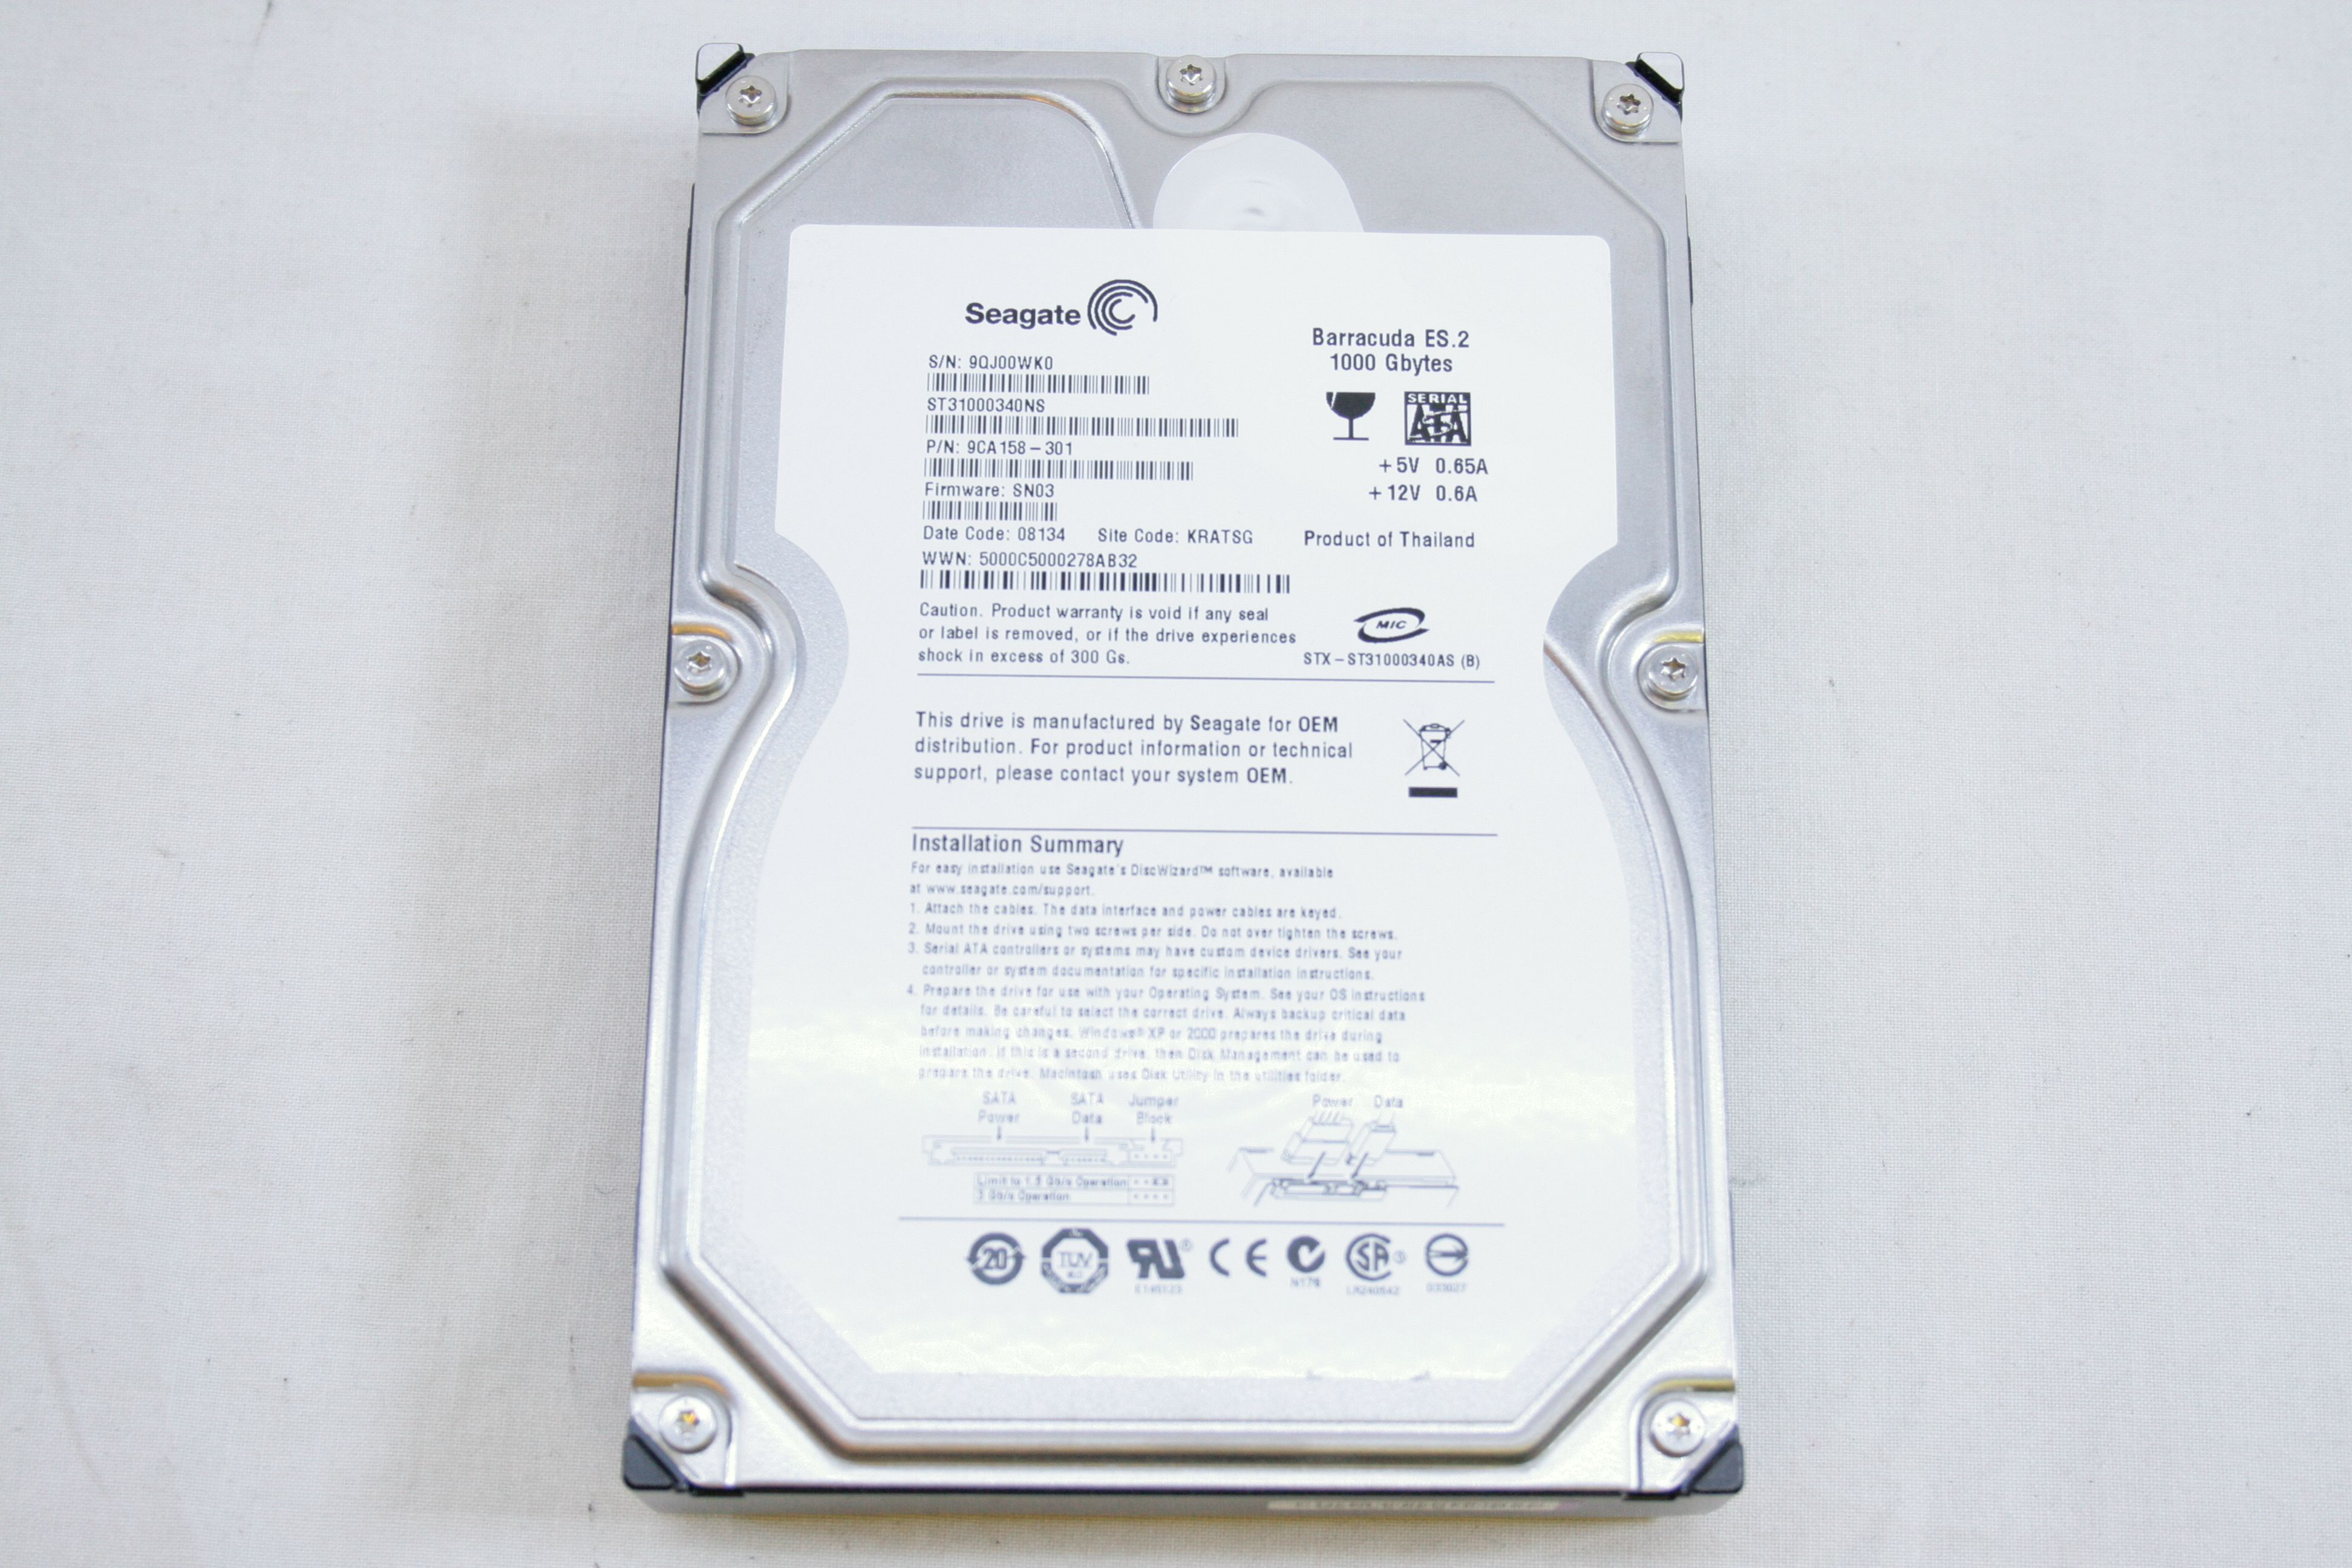 Seagate Barracuda Es2 1tb 7200 Rpm 35 Internal Sata Hard Drive Baracuda Open Full Size Image